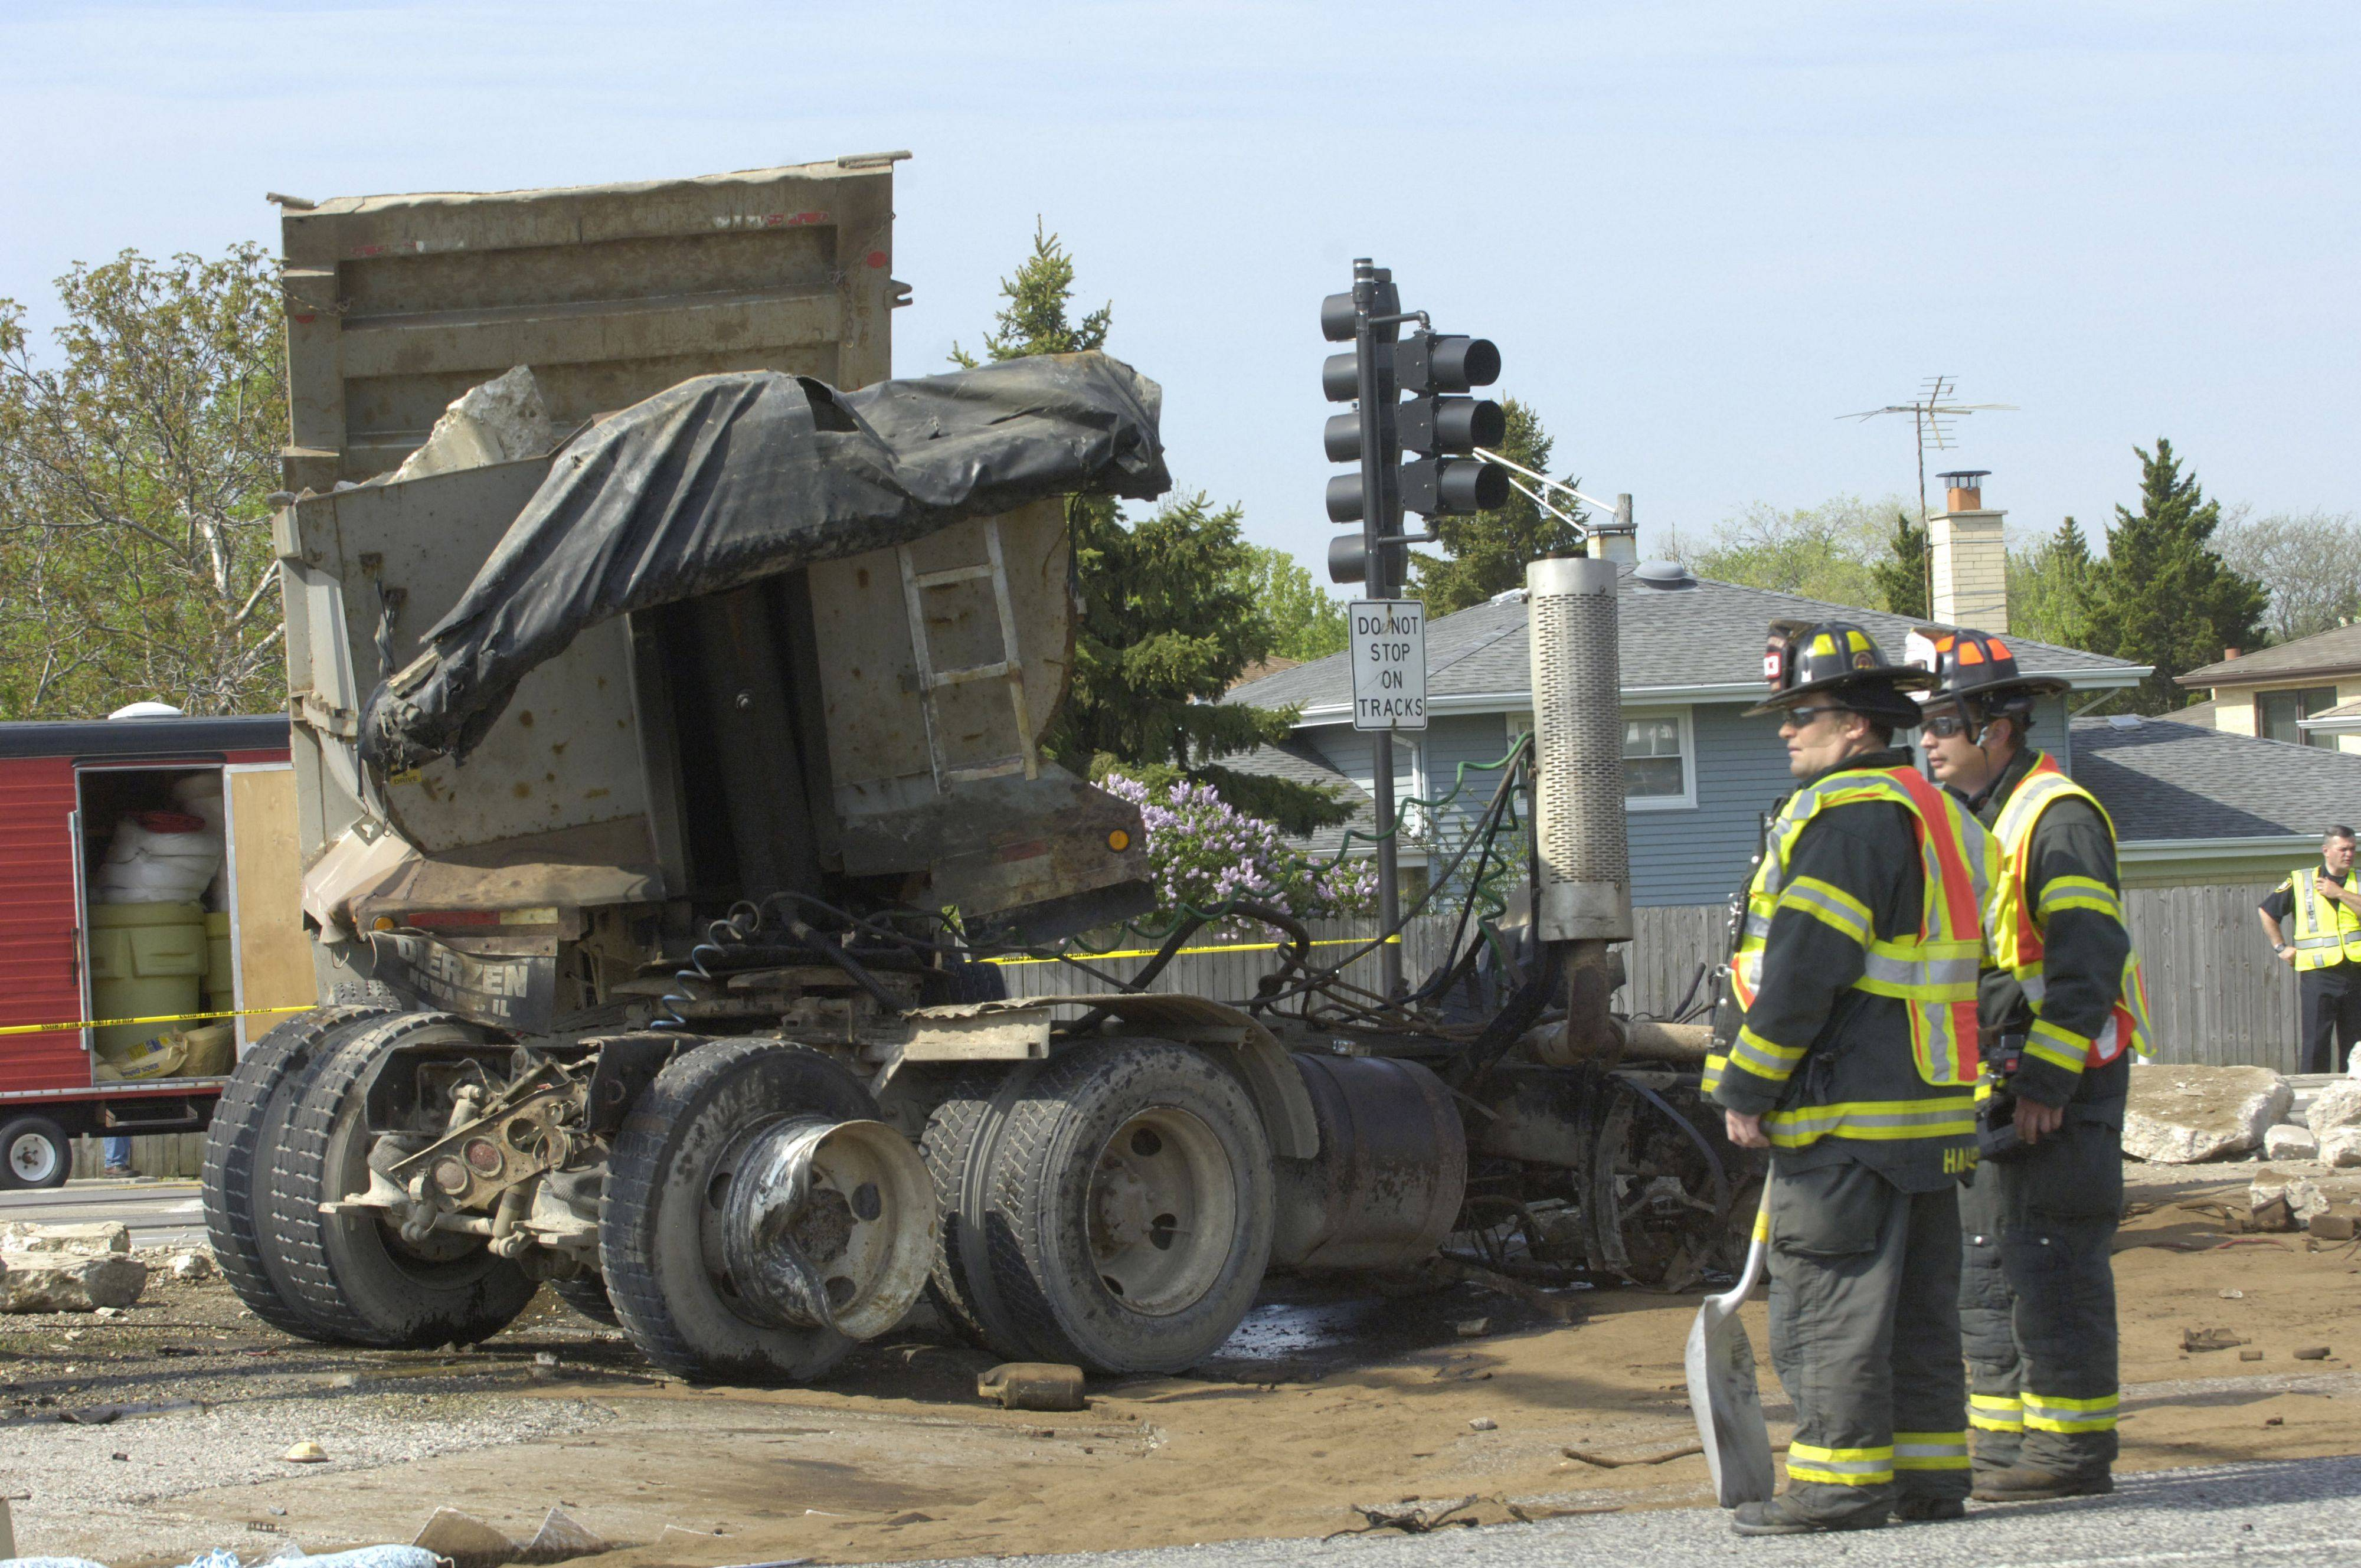 Firefighters stand near the wreckage of the truck after a Metra passenger train derailed when it struck a loaded dump truck at Mount Prospect Road Friday morning.